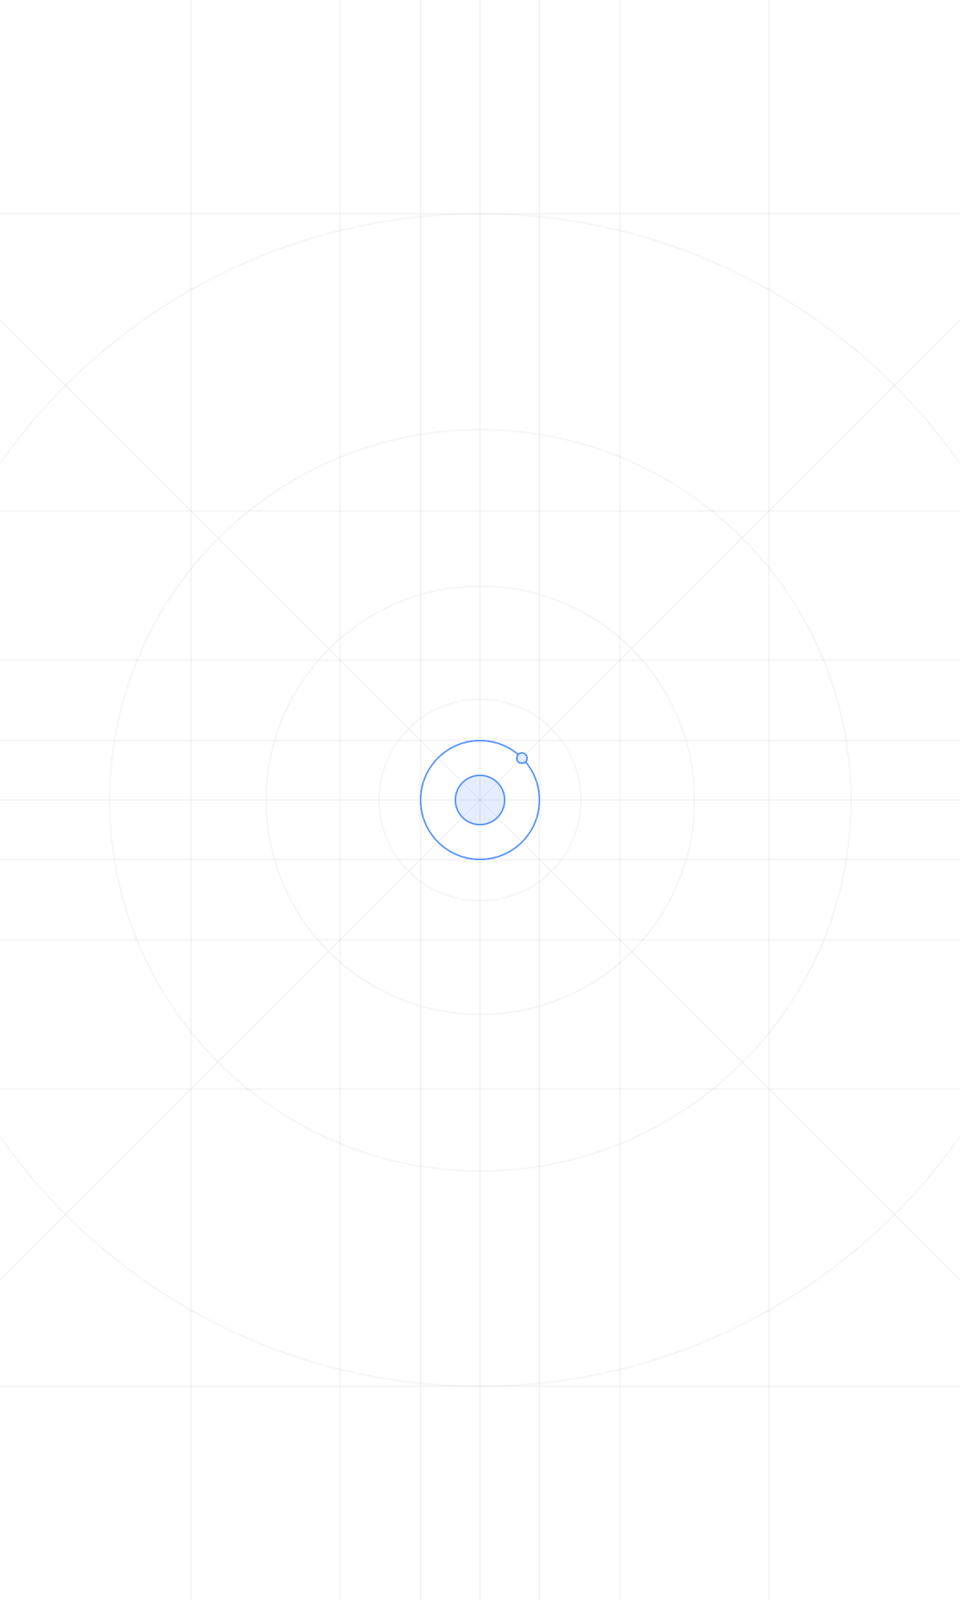 resources/android/splash/drawable-port-xxhdpi-screen.png